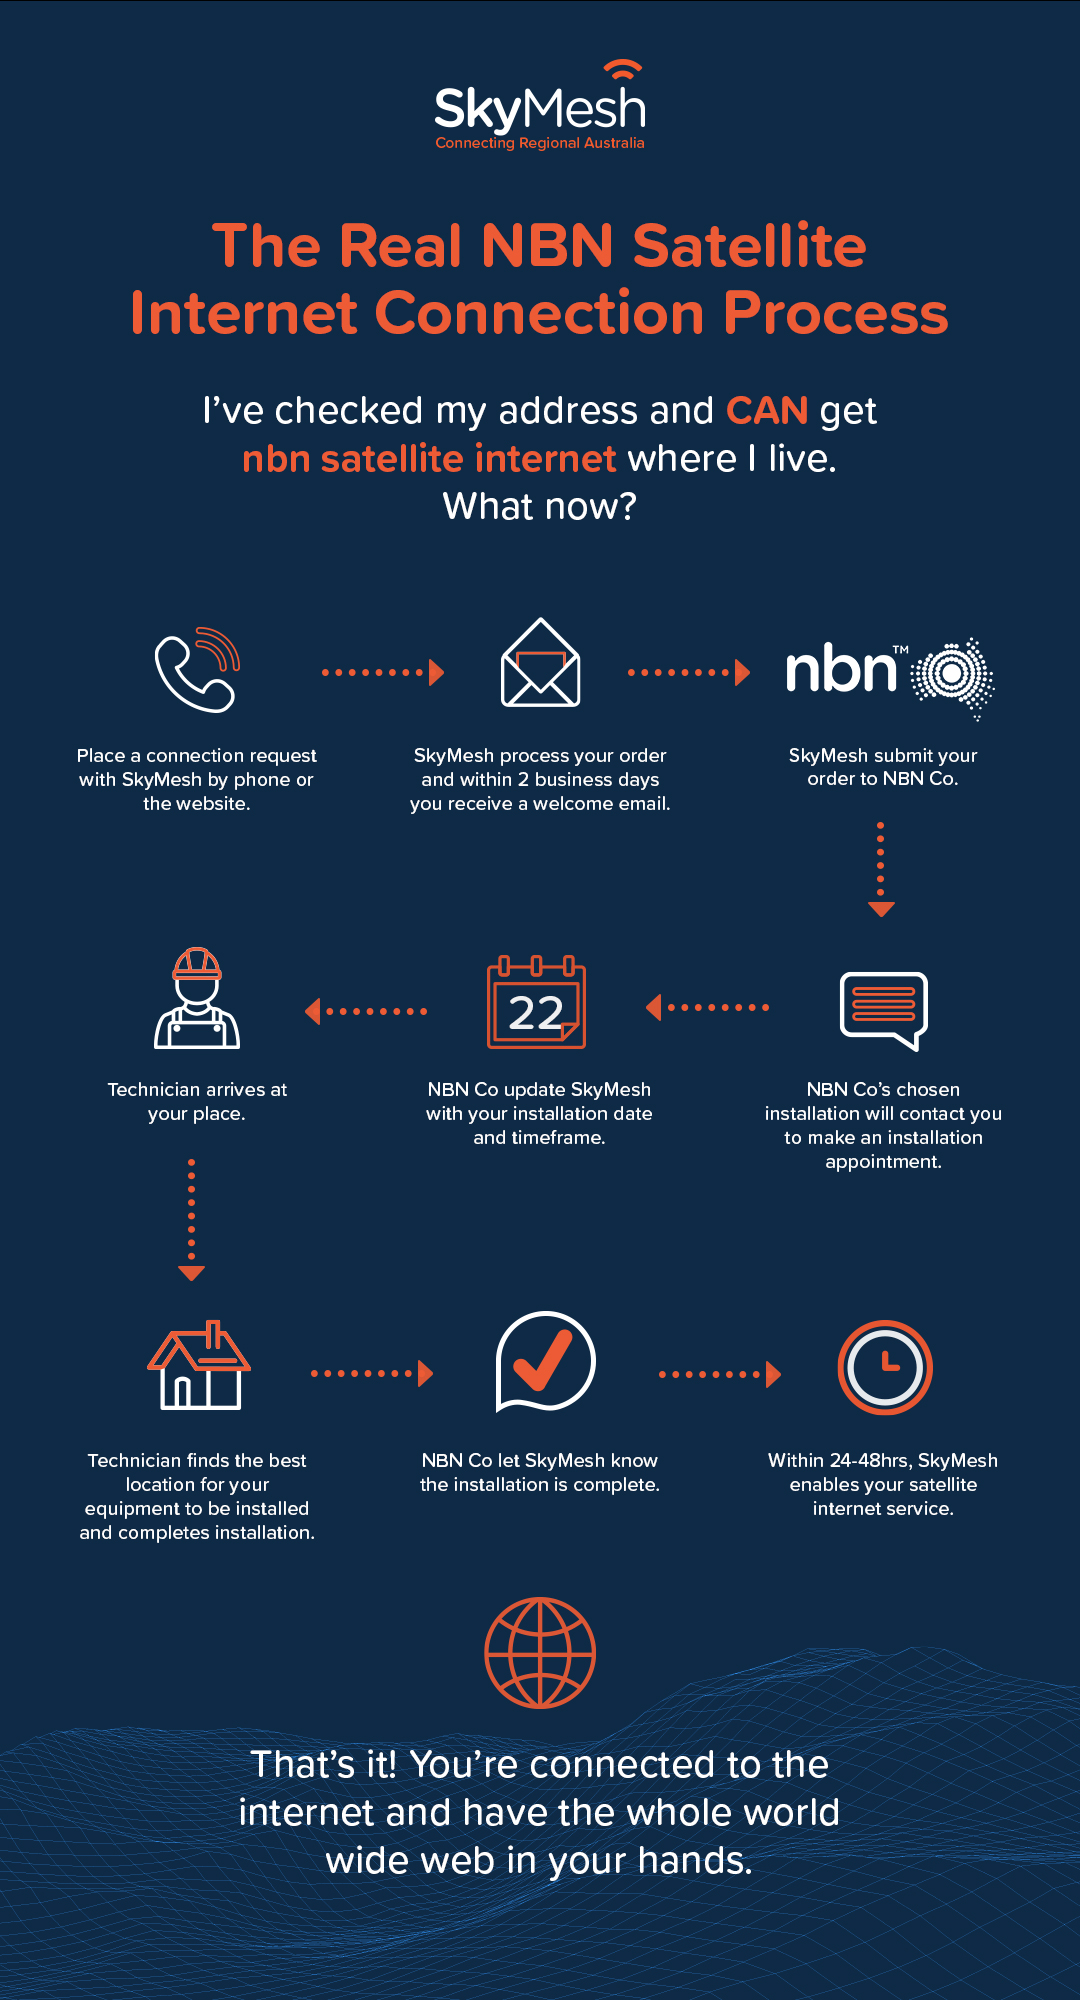 Infographic showing the process of connecting to nbn satellite internet